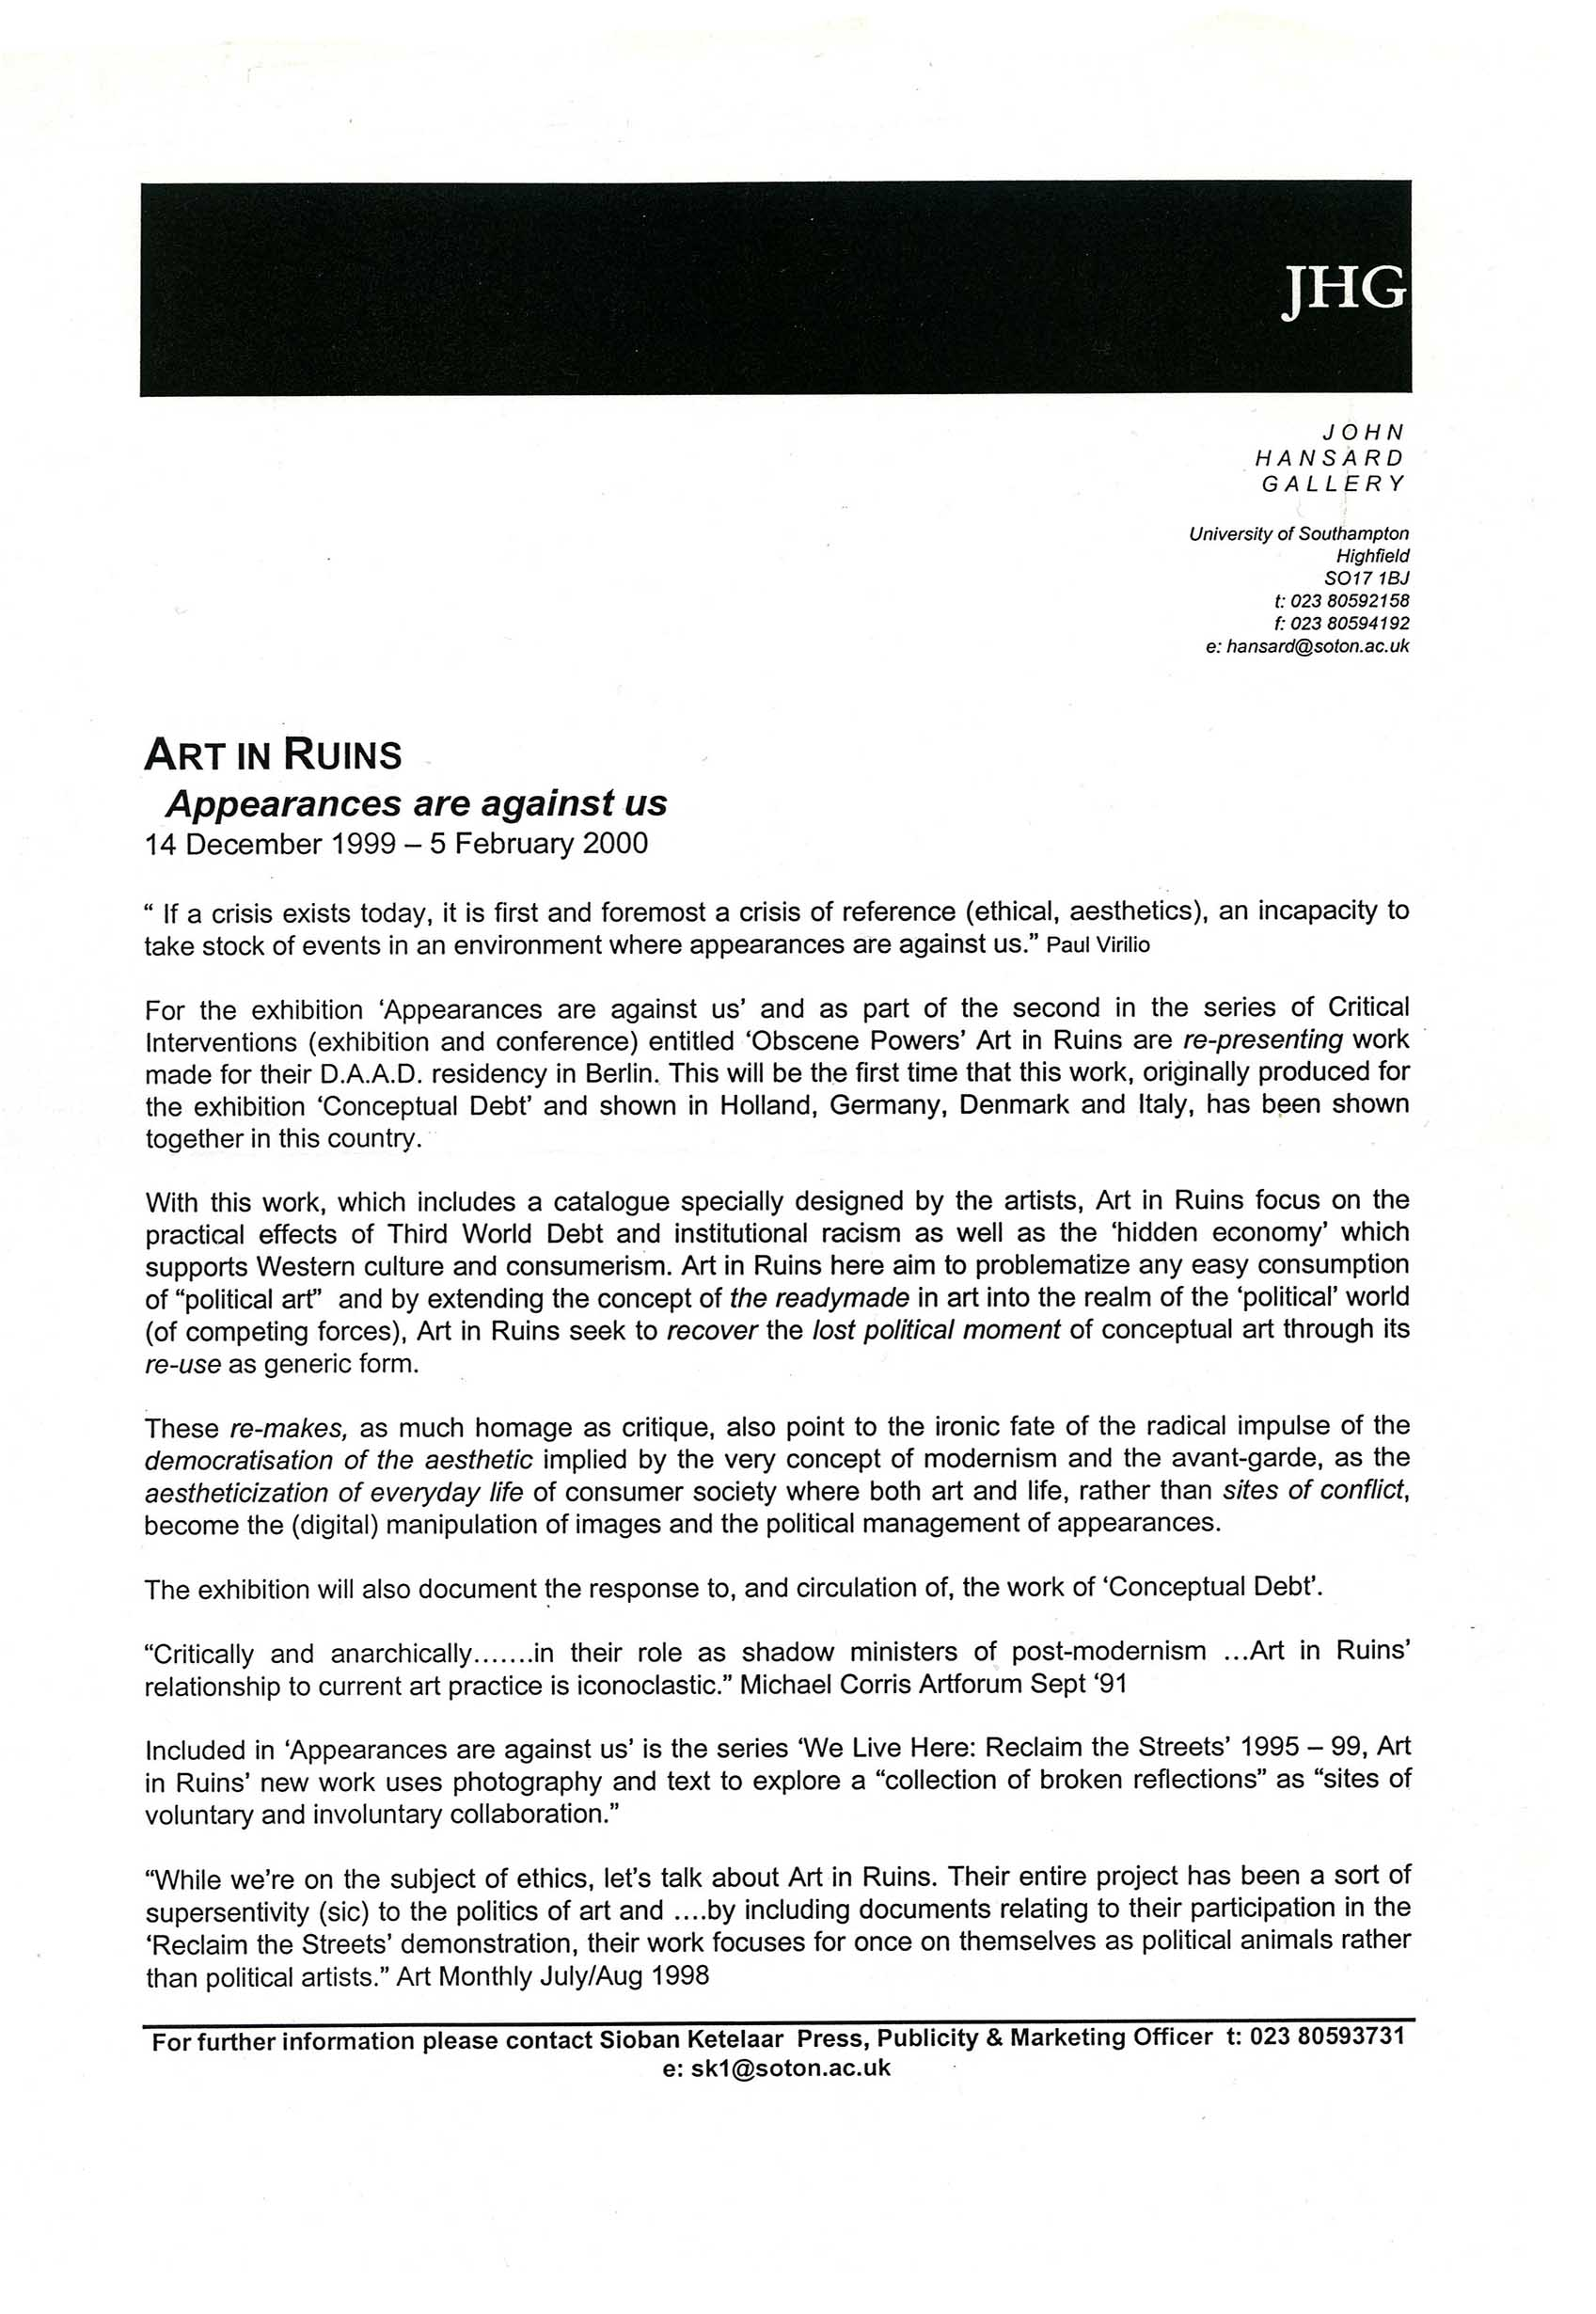 APPEARANCES ARE AGAINST US Art in Ruins John Hansard Gallery Southampton 2000 Press Release